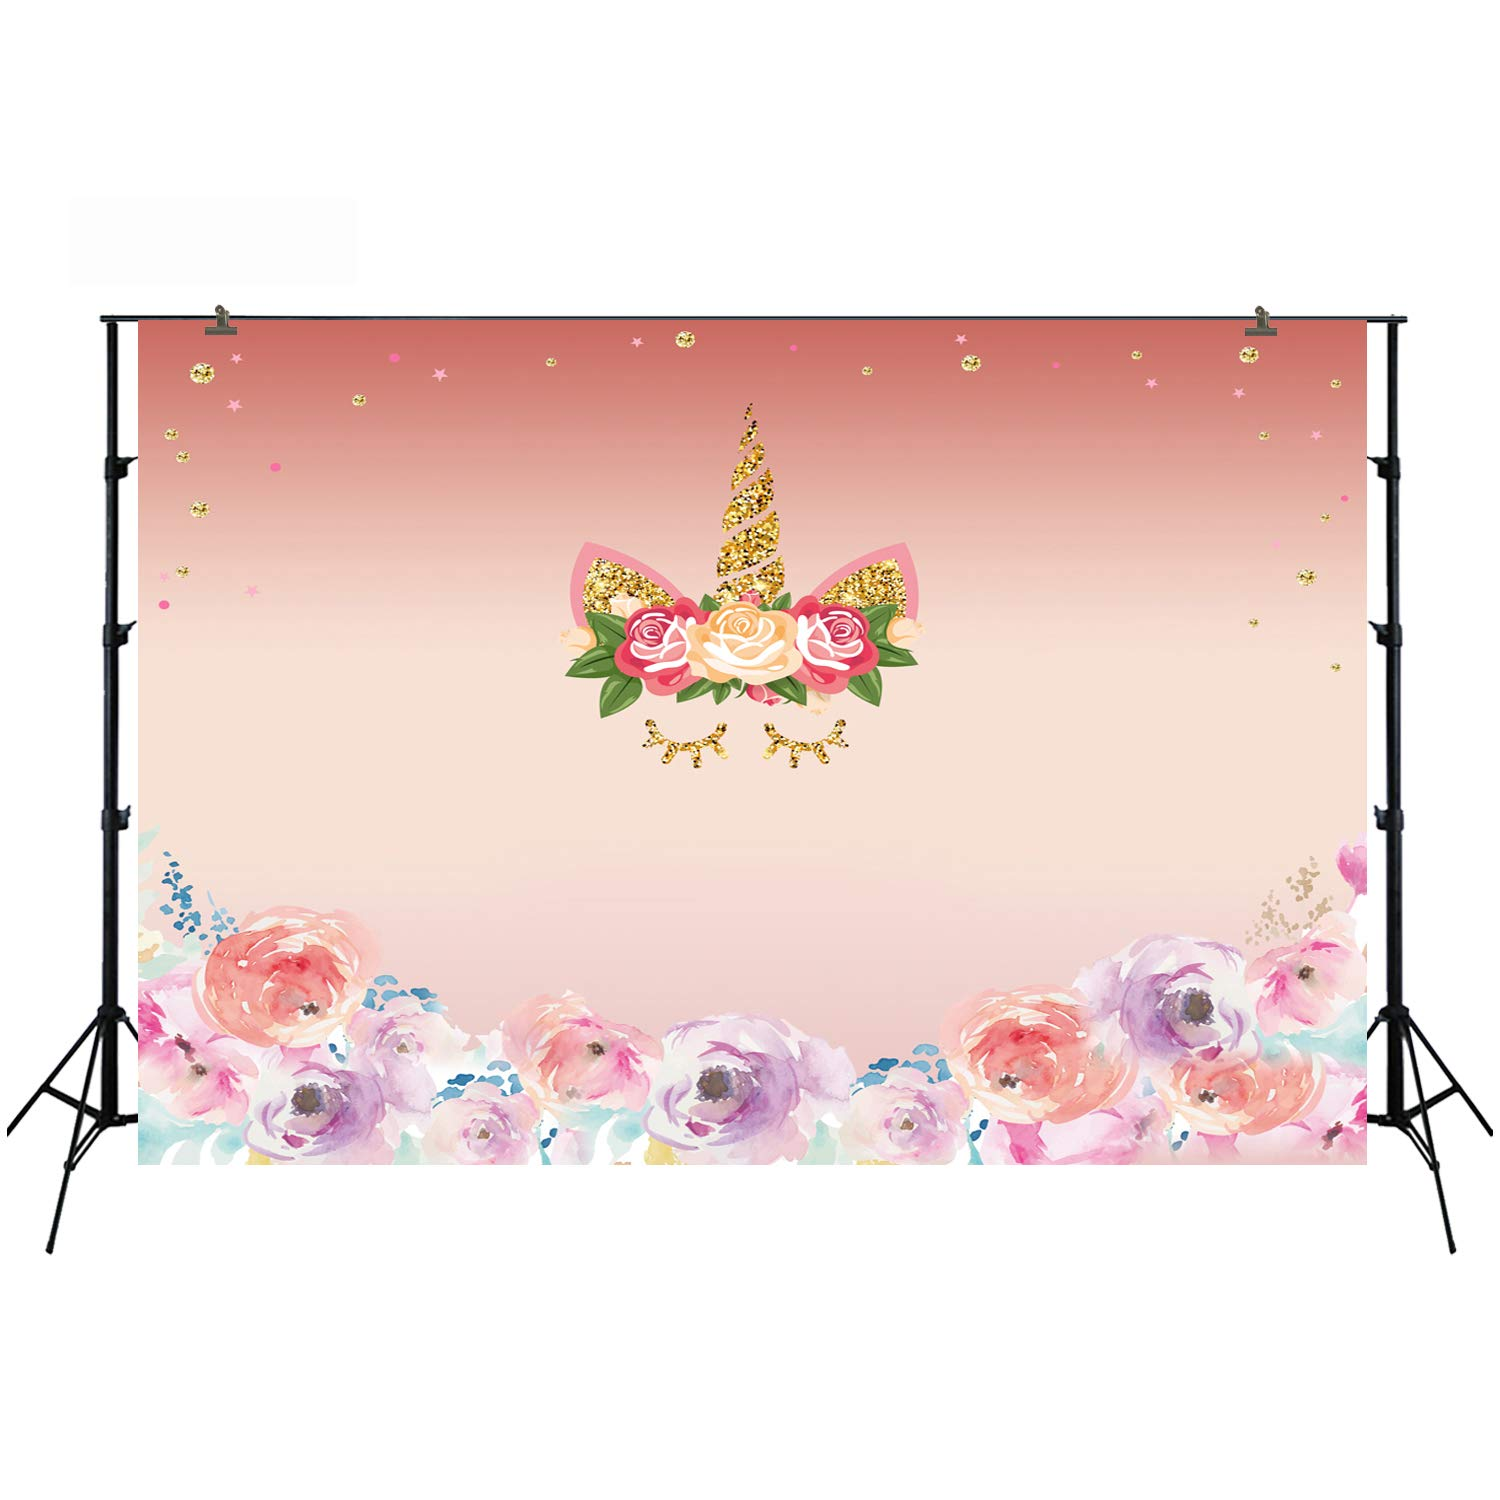 6.5x5ft Baby Shower Pink Cartoon Happy Birthday Photography Backdrops Photo Background Party Wall Decoration W-331